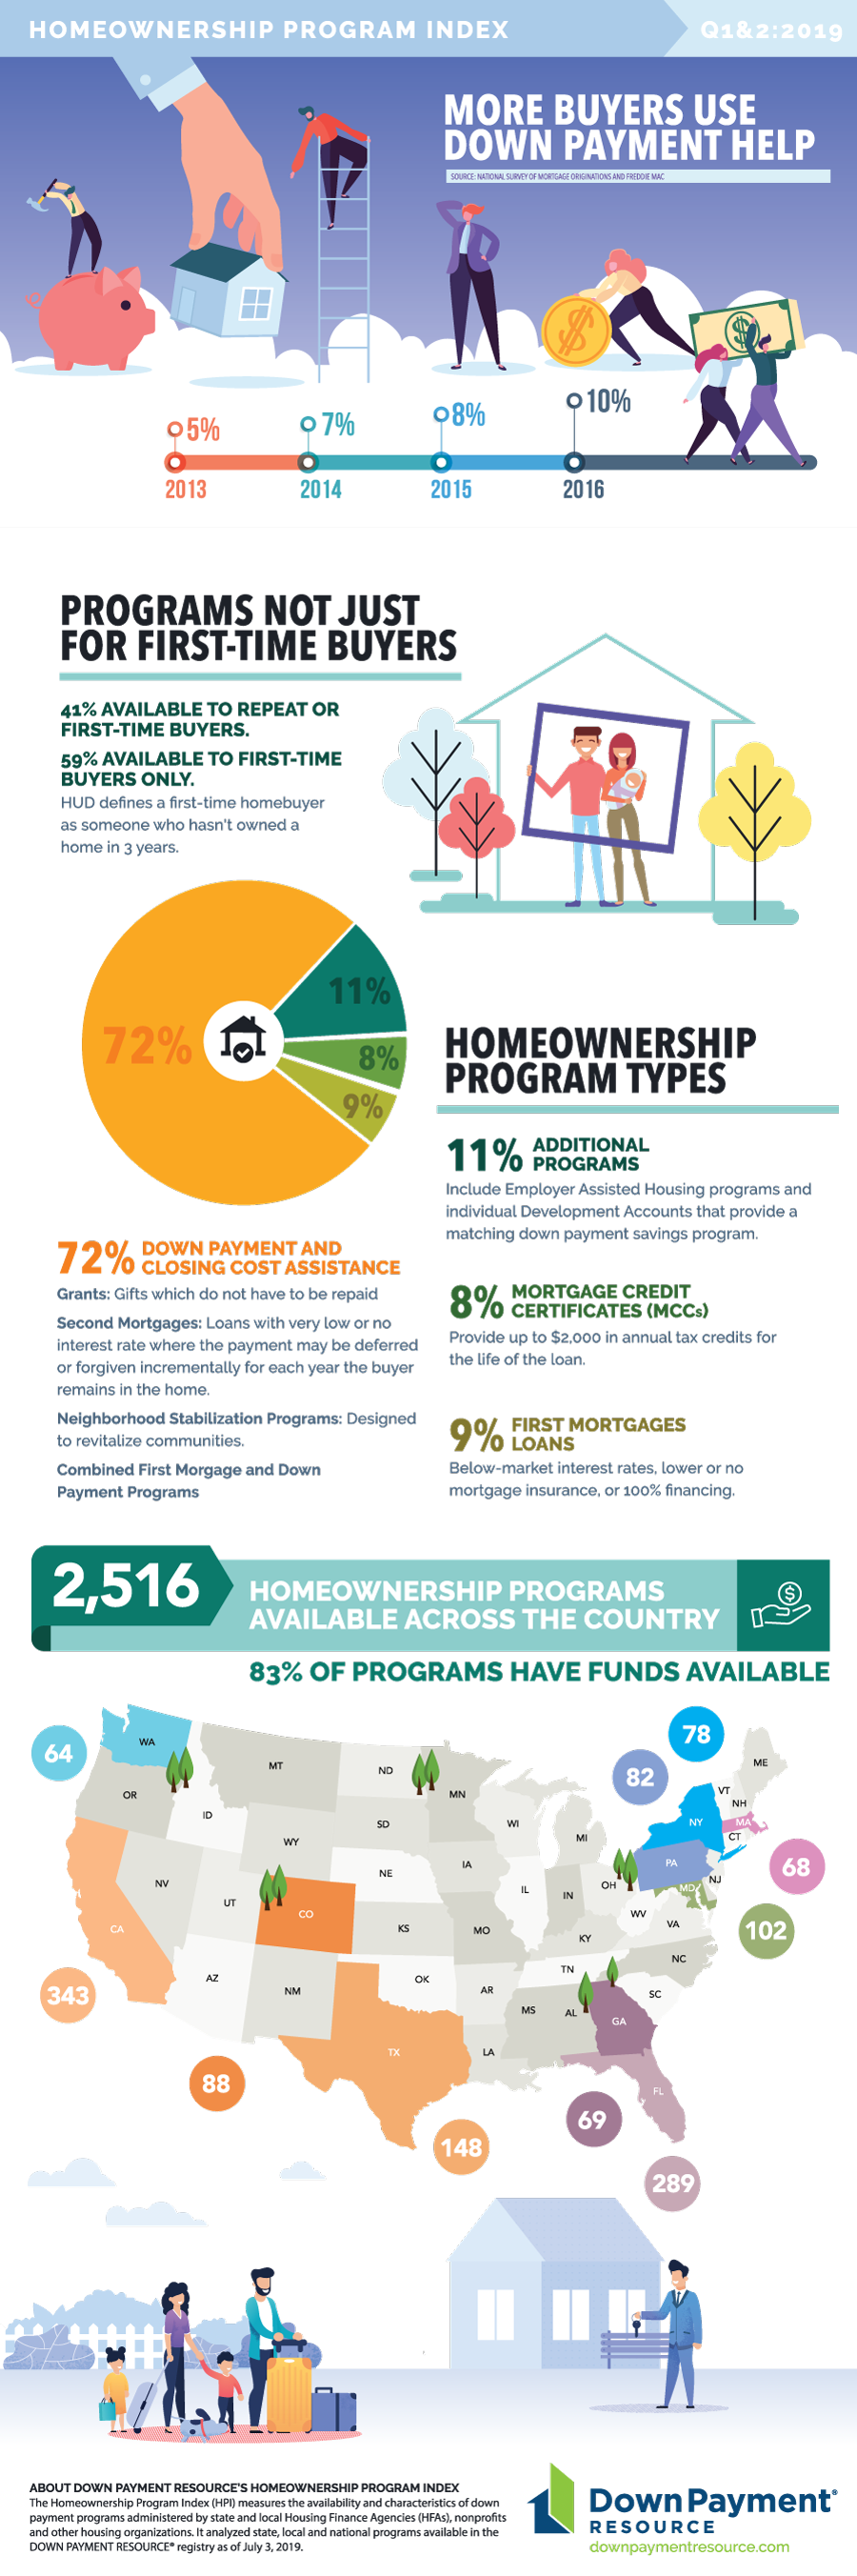 dpr more buyers use down payment help 2